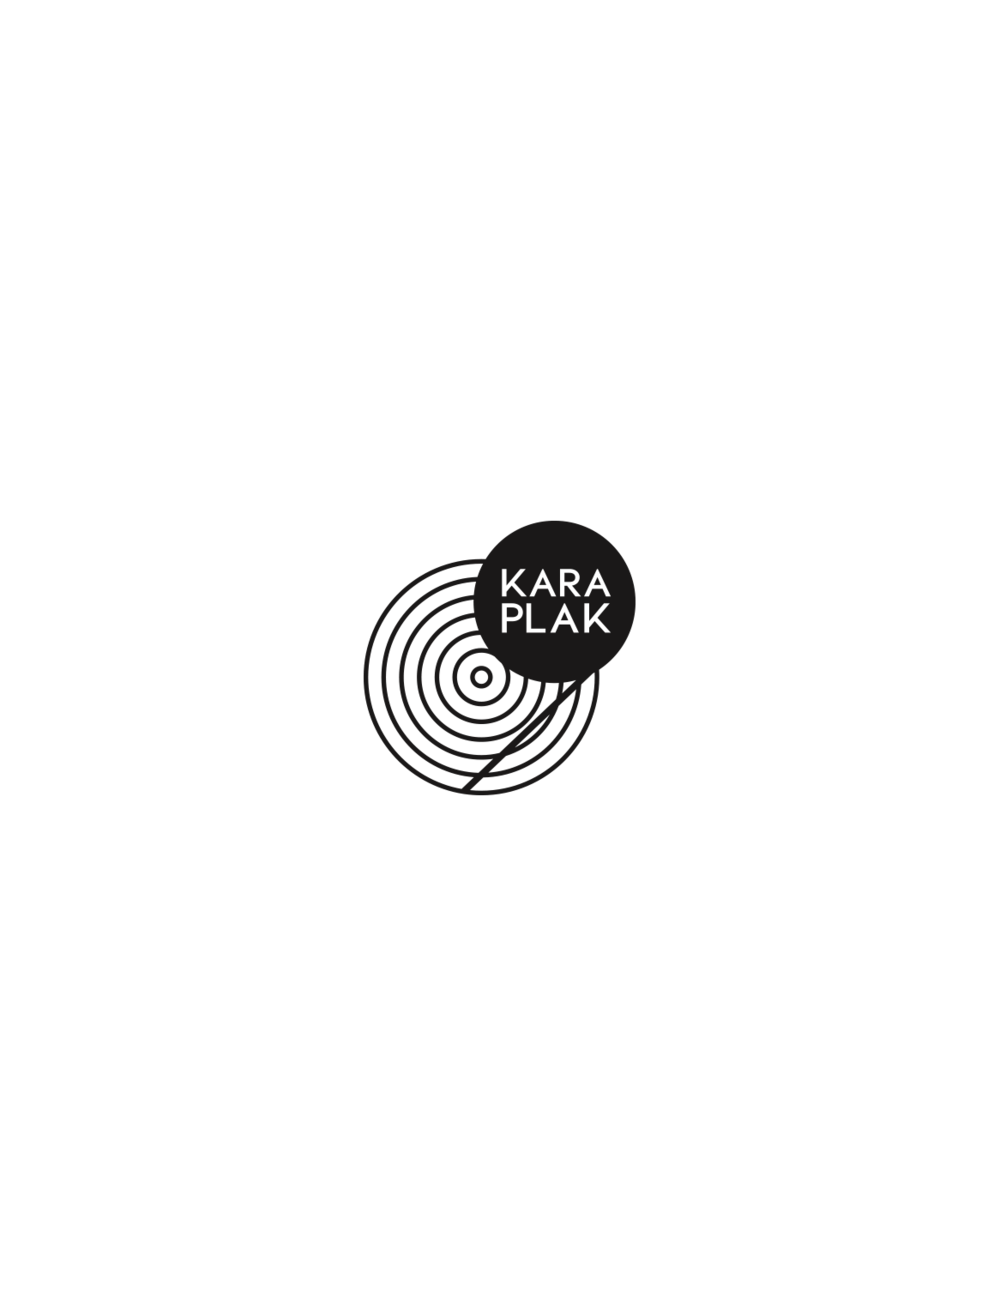 Logo for Kara Plak Publishing, 2015.